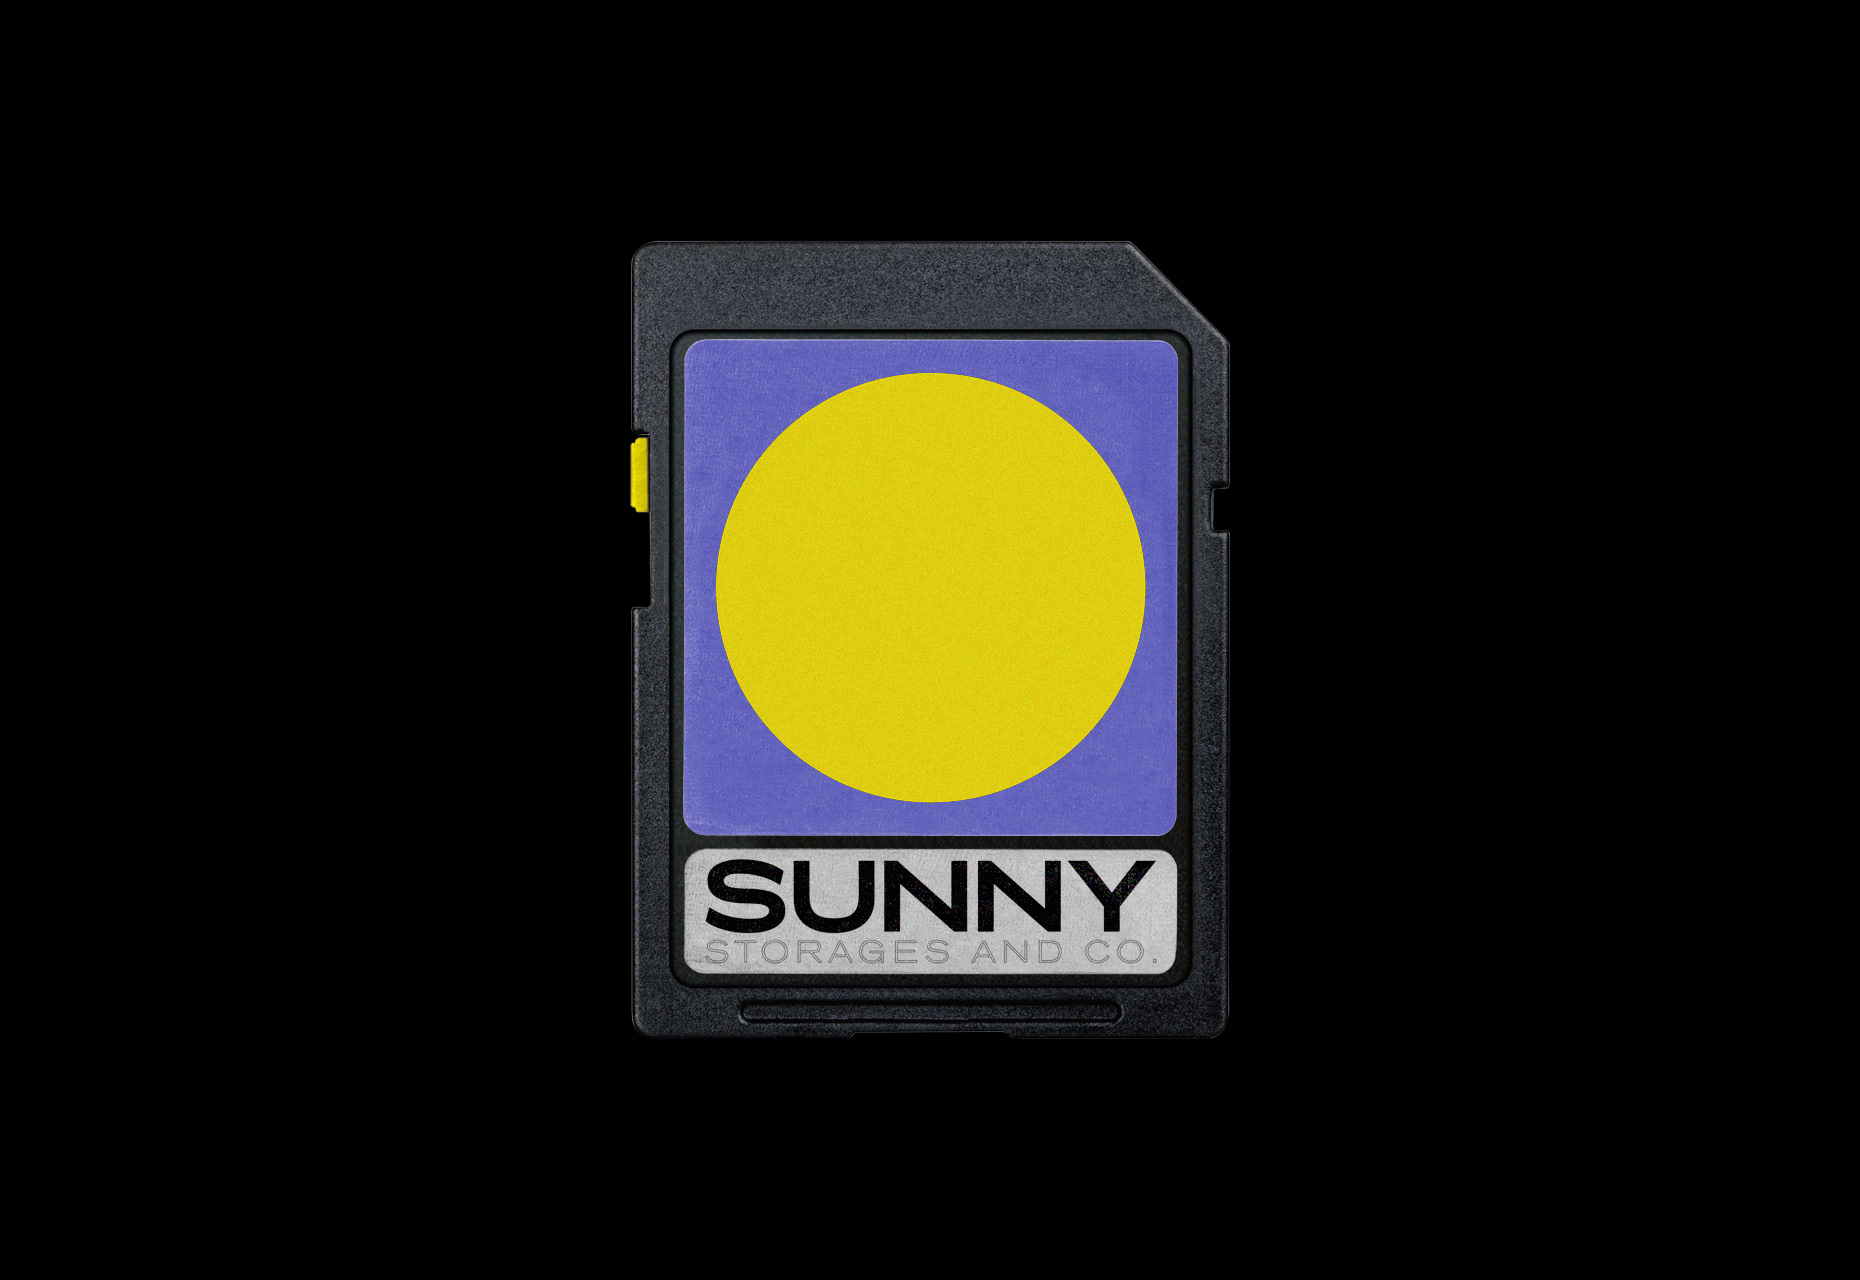 Revisiting the devices from 'Backup Days', brutalist, acid graphics and contemporary